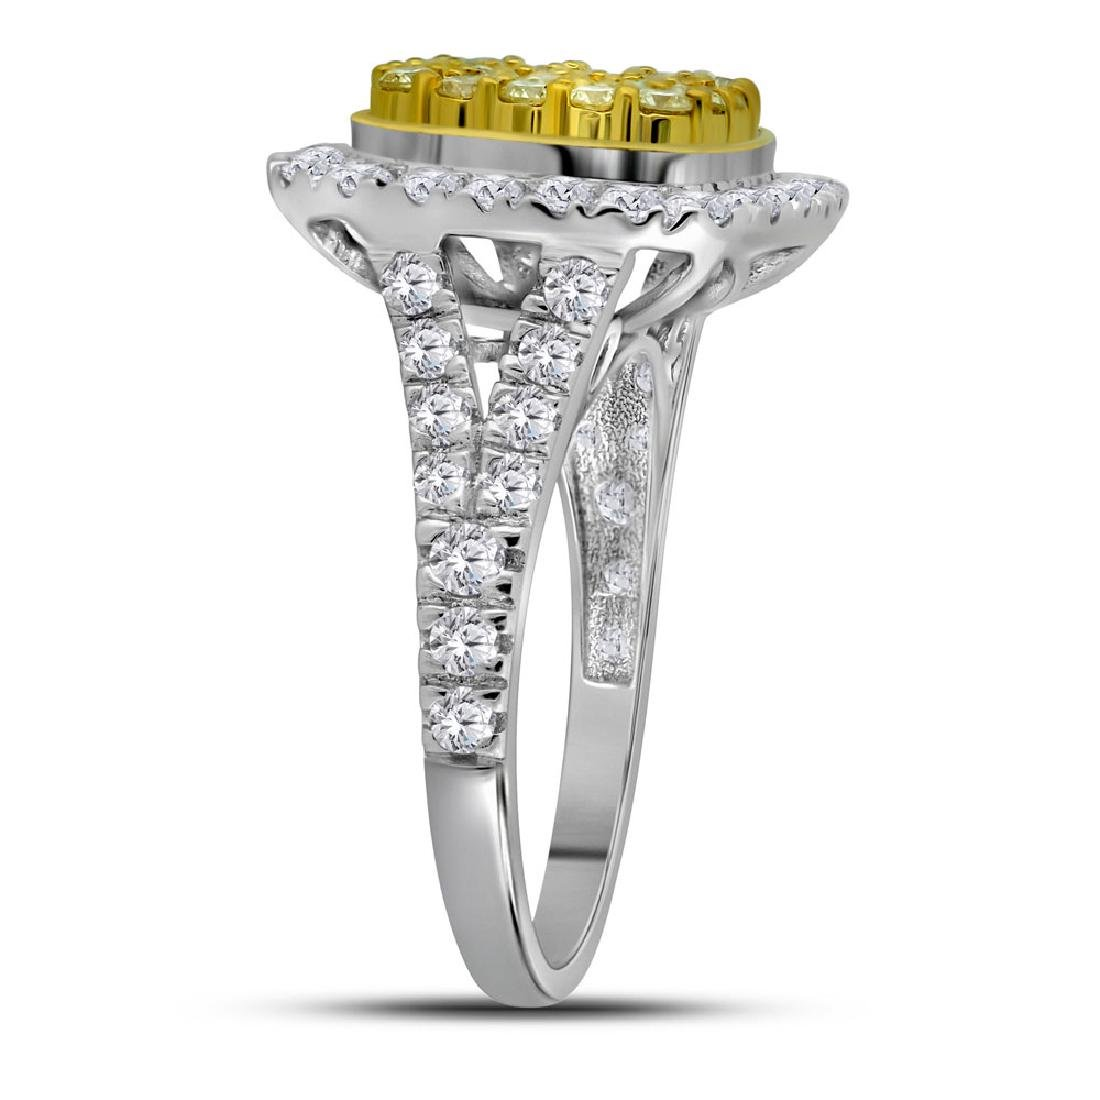 1.75 CTW Natural Yellow Diamond Cluster Ring 14KT White - 3